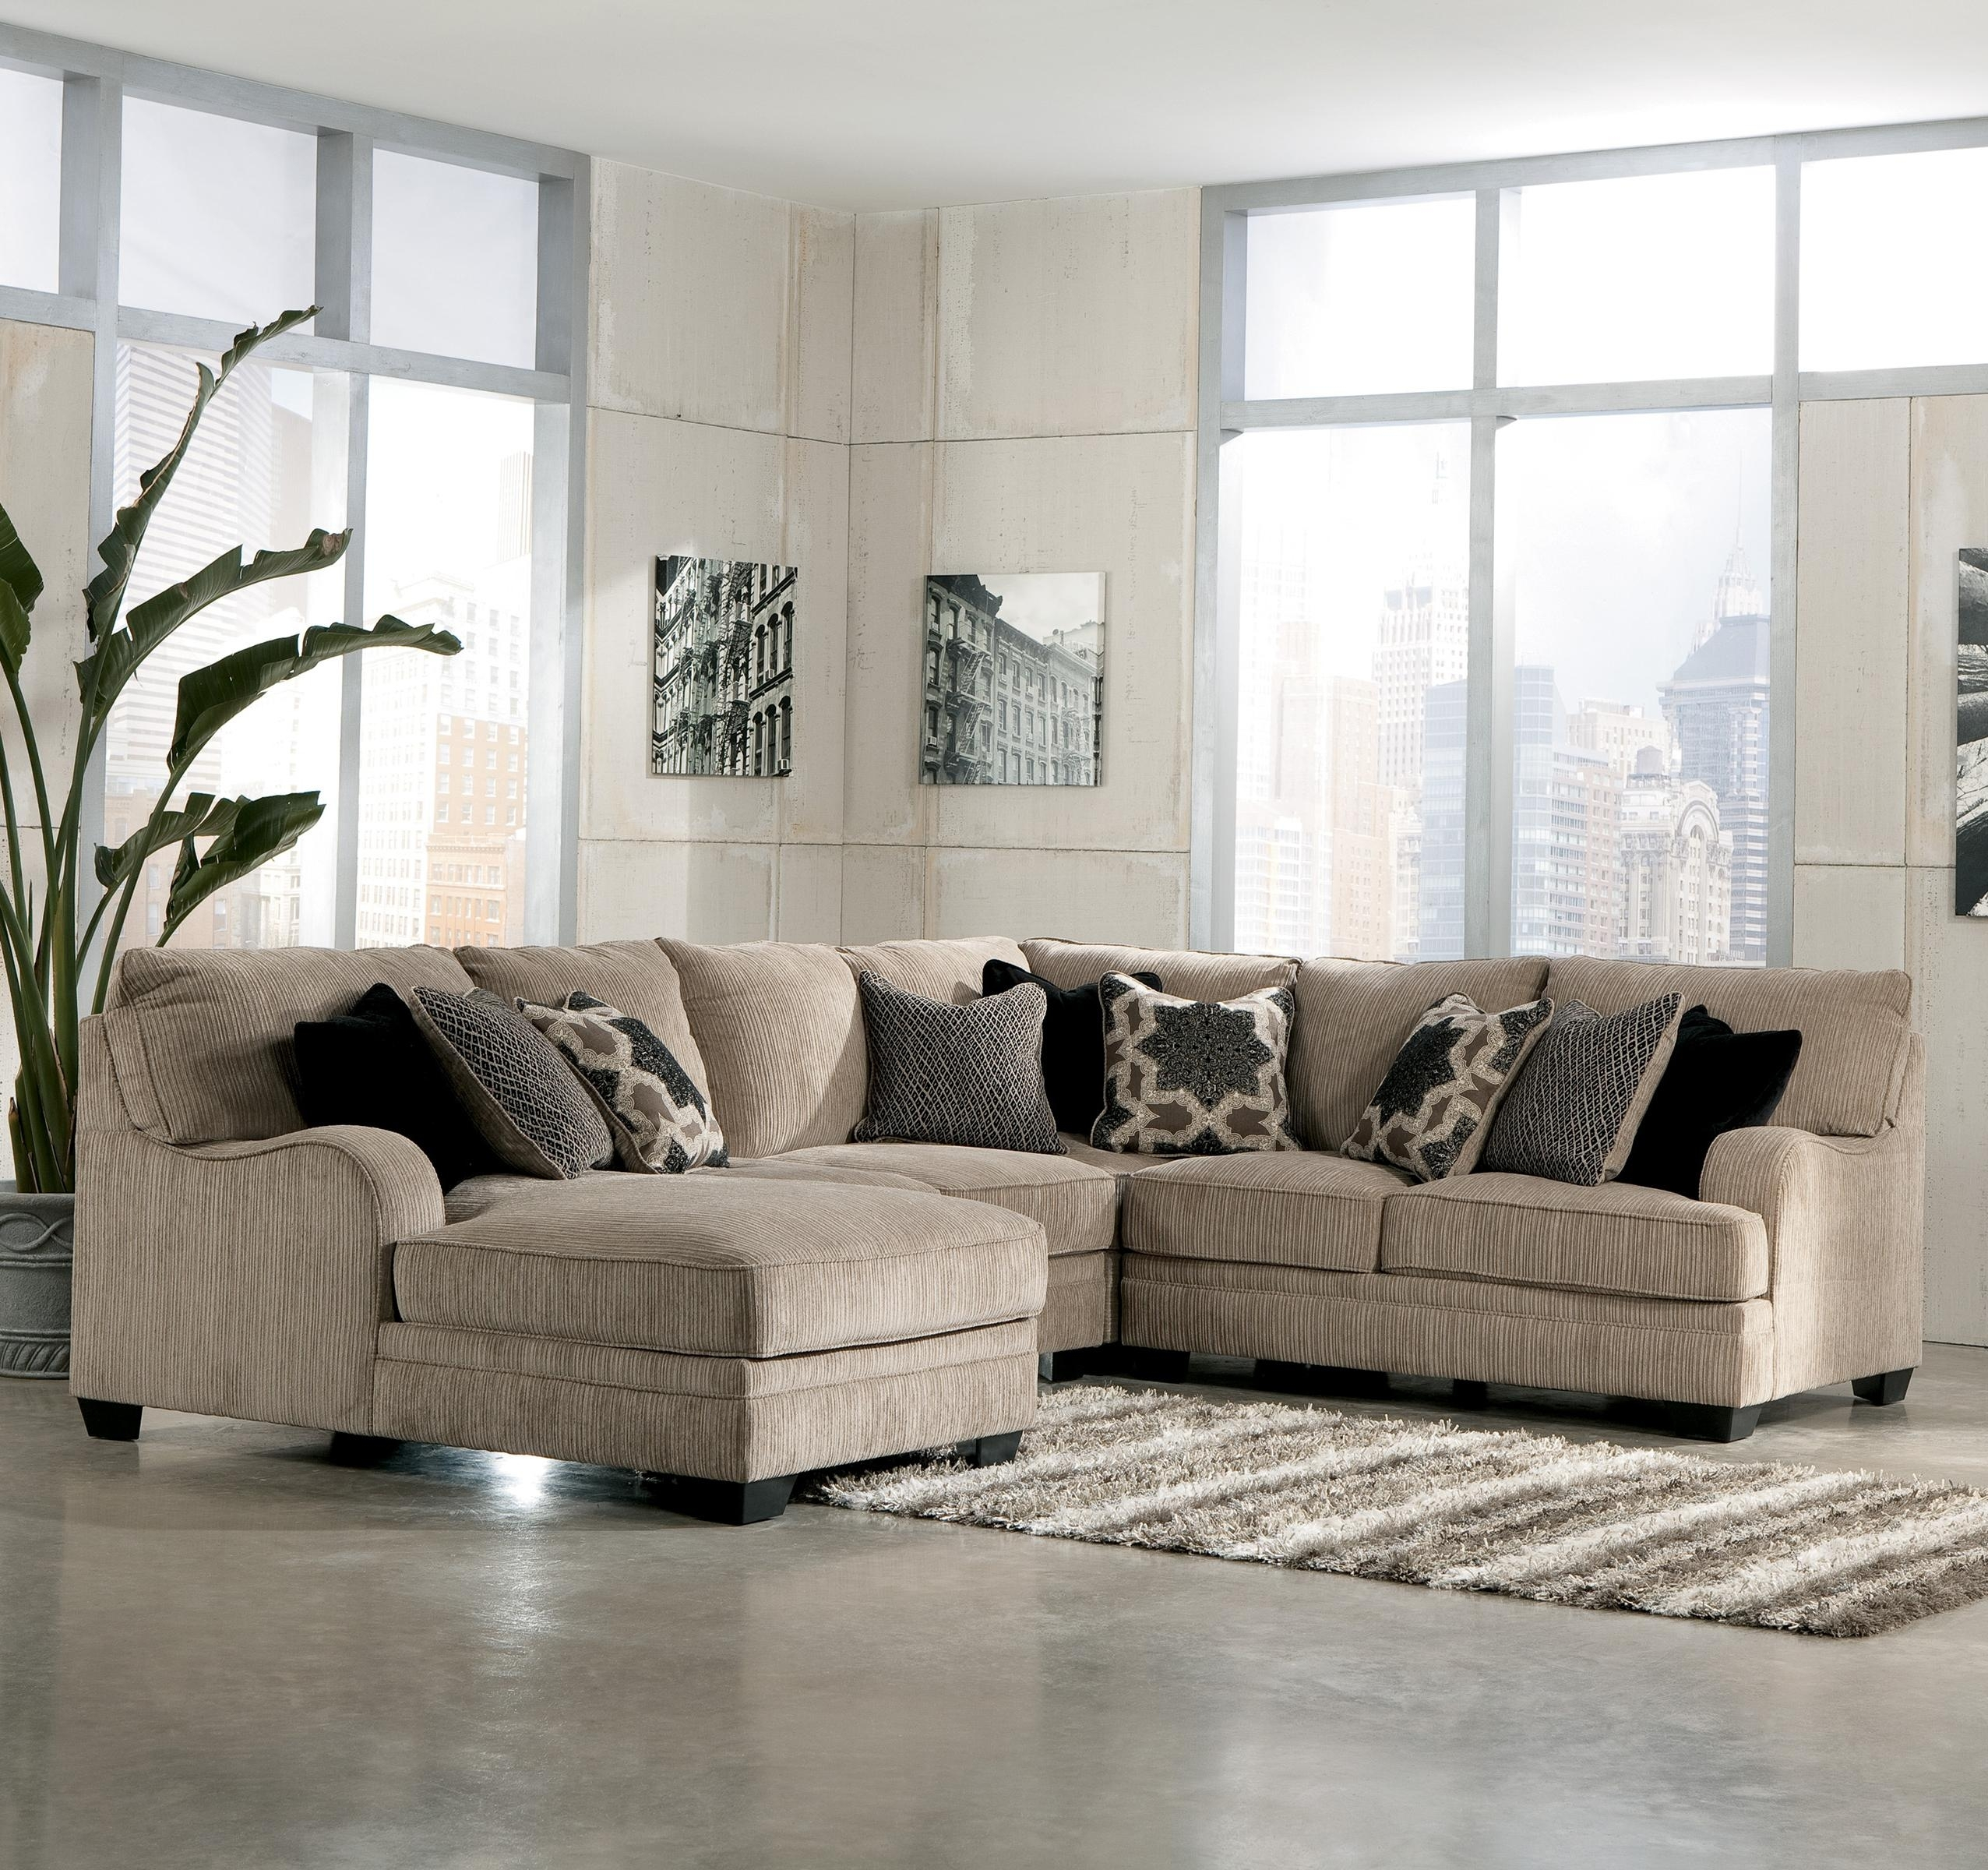 Leather Sofas London Ont: 2019 Best Of El Paso Texas Sectional Sofas